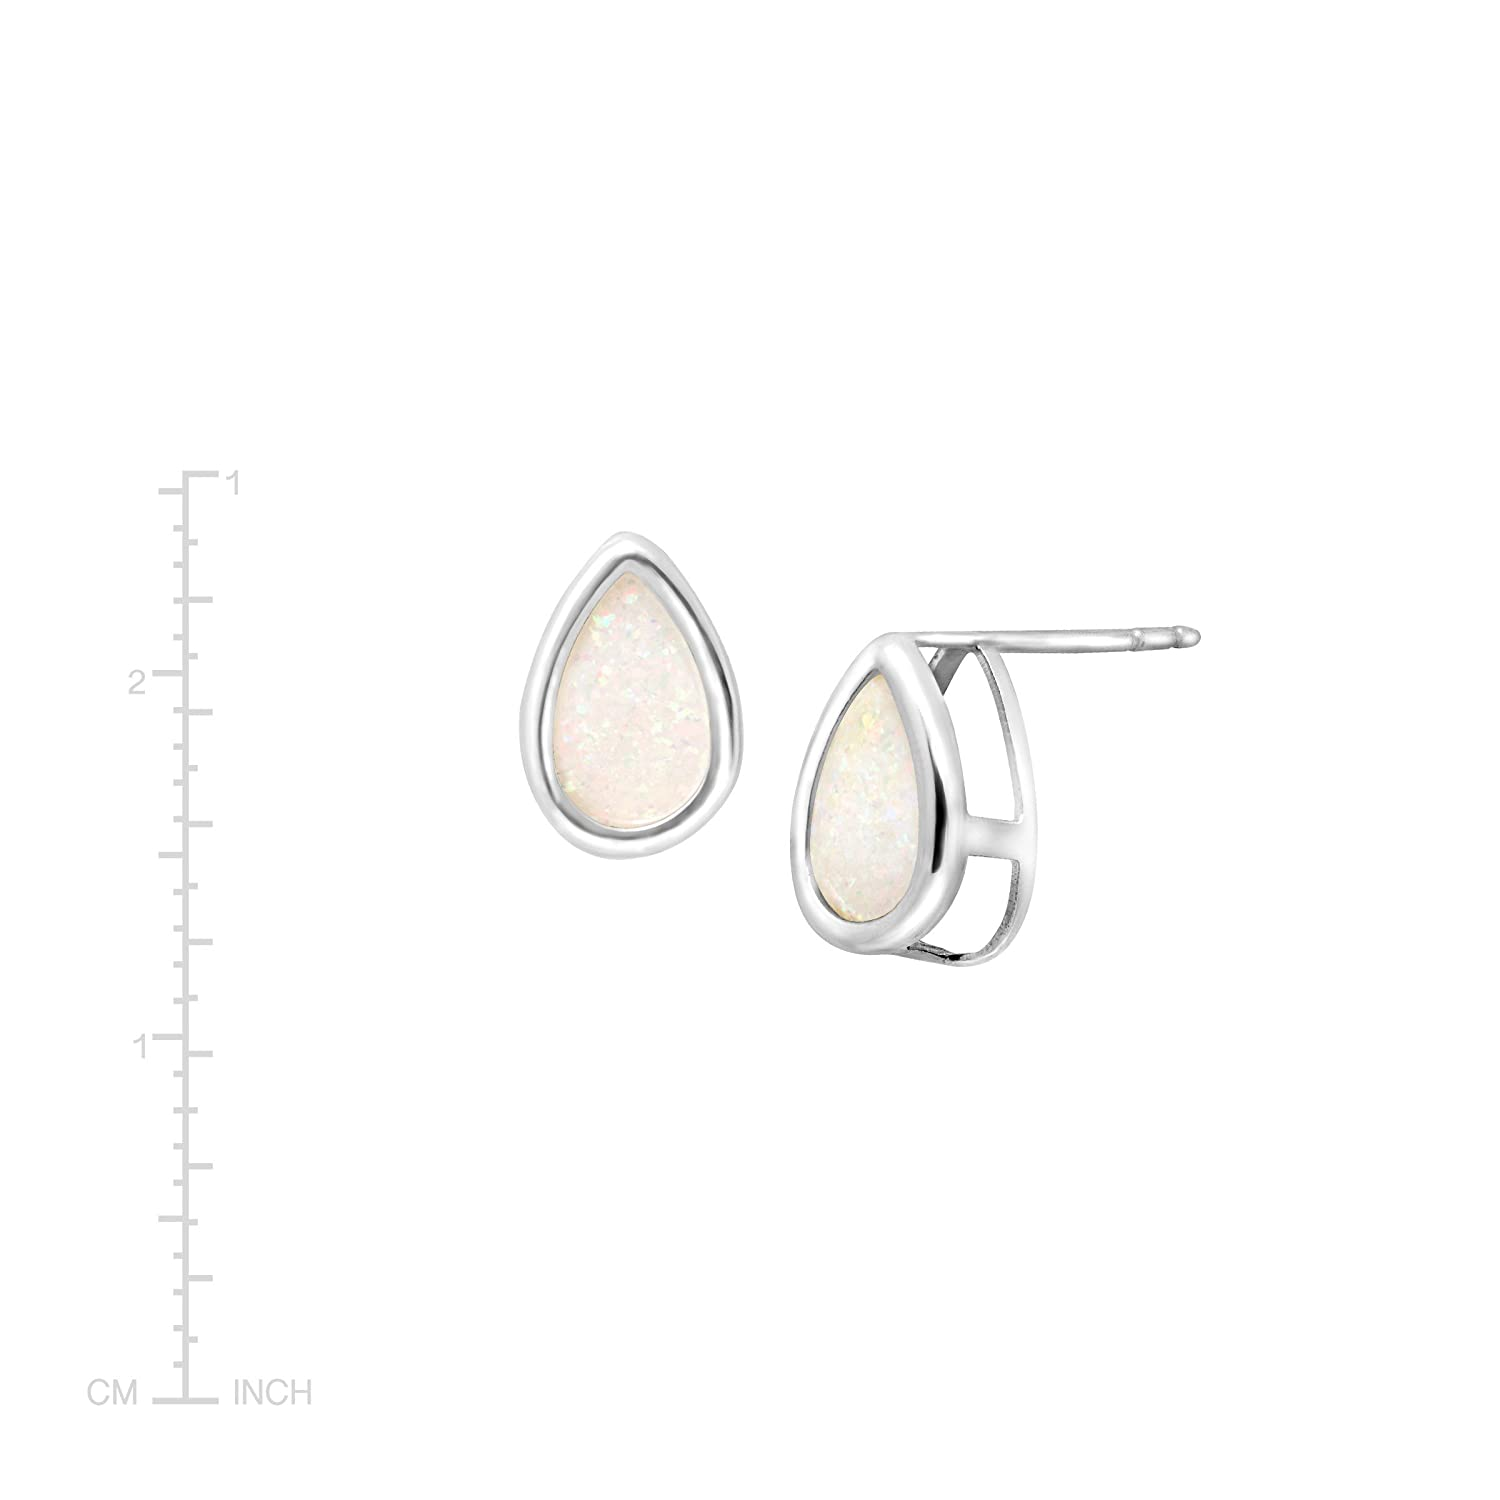 56903f33f Amazon.com: Natural White Opal Teardrop Stud Earrings in Sterling Silver:  Jewelry